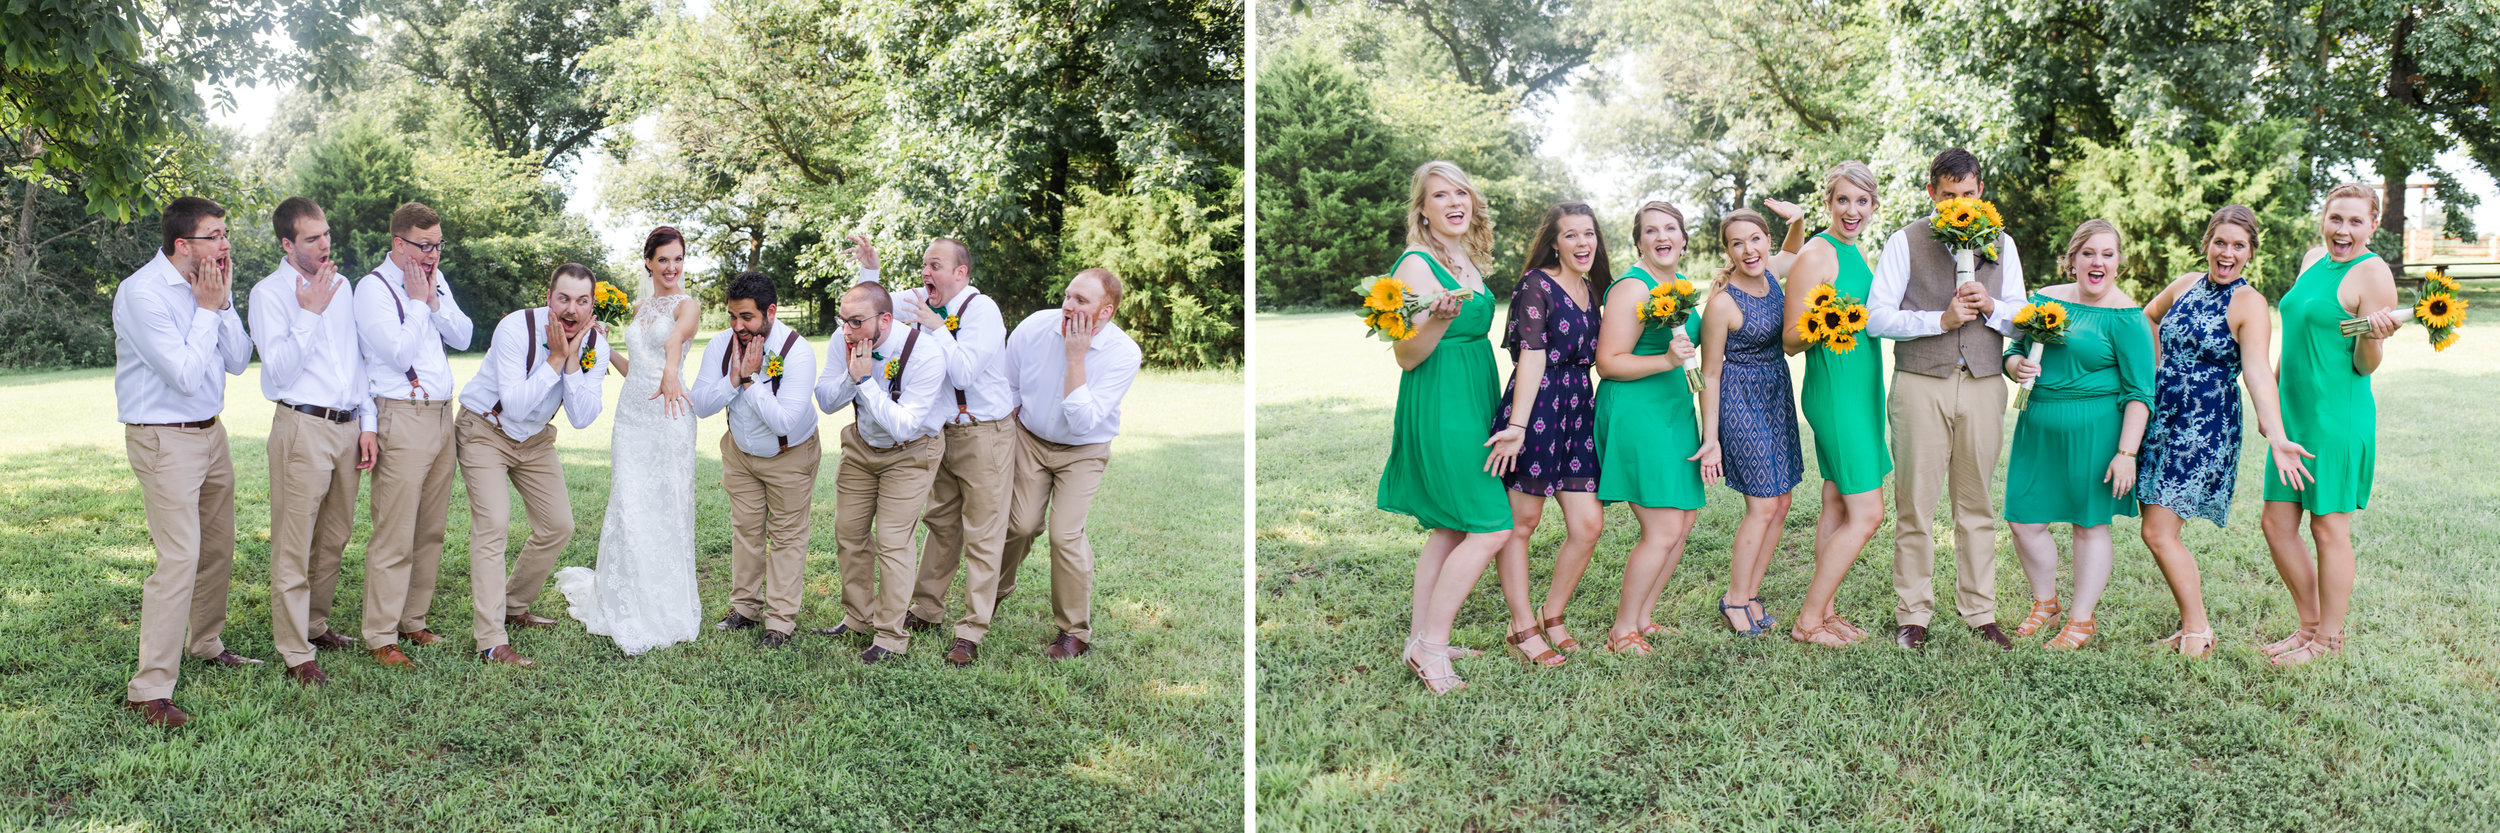 Bentonville Wedding Photographer Holland Barn 8.jpg